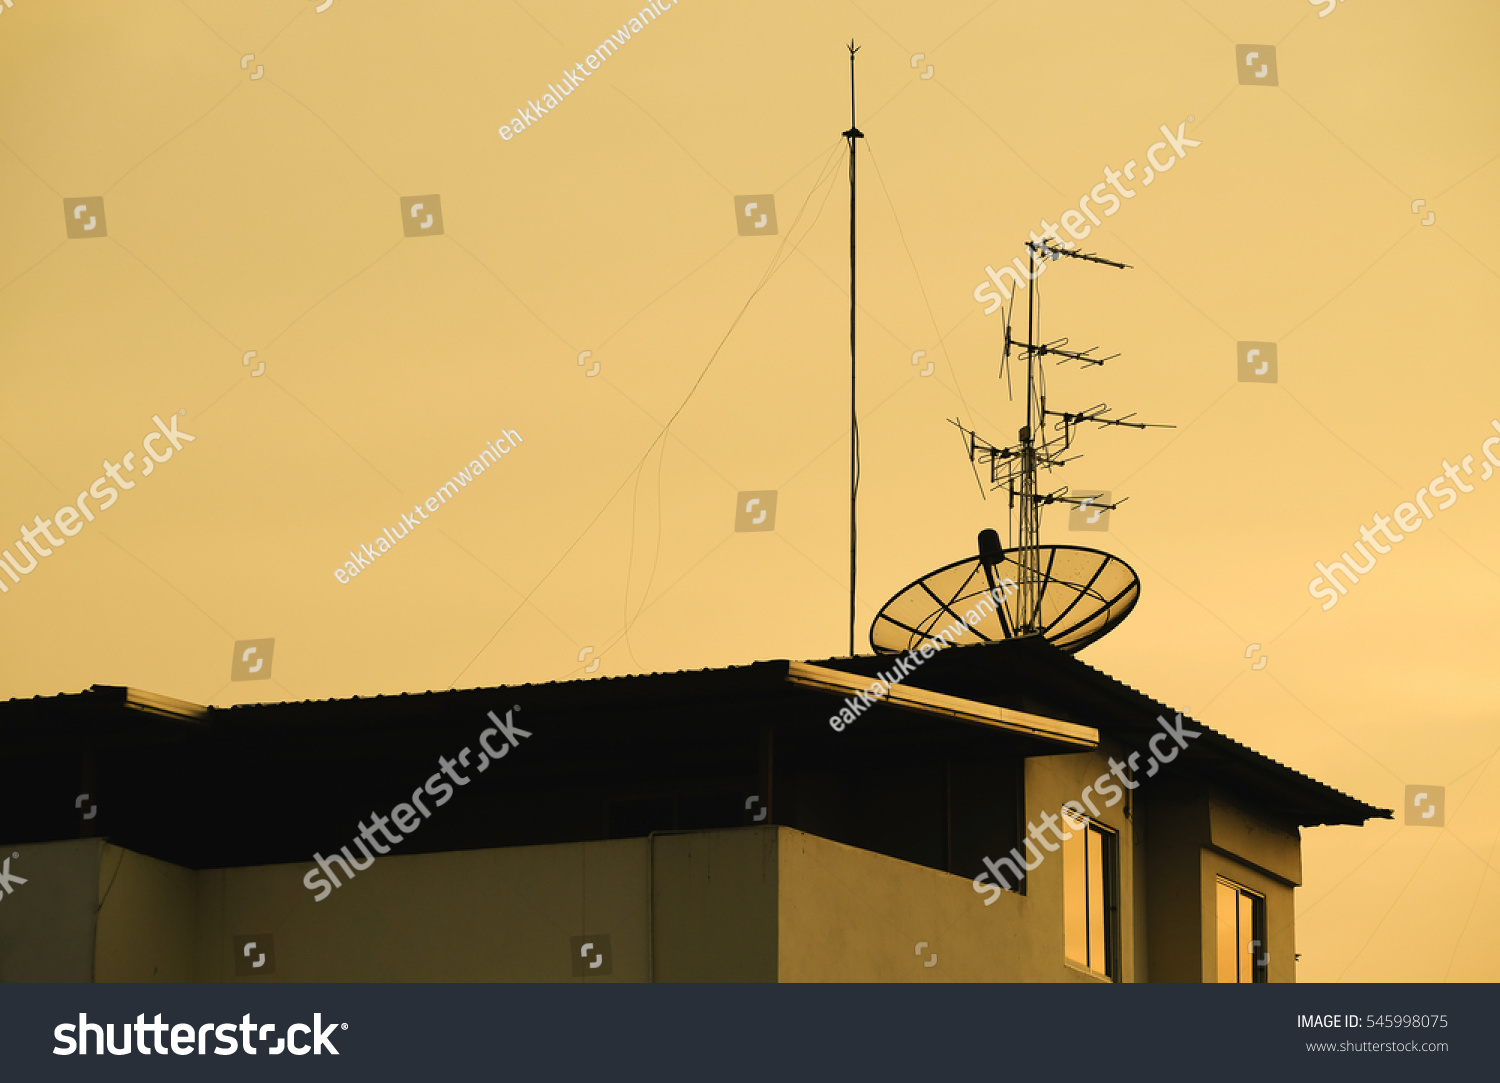 hight resolution of satellite dish sky sunset on the home